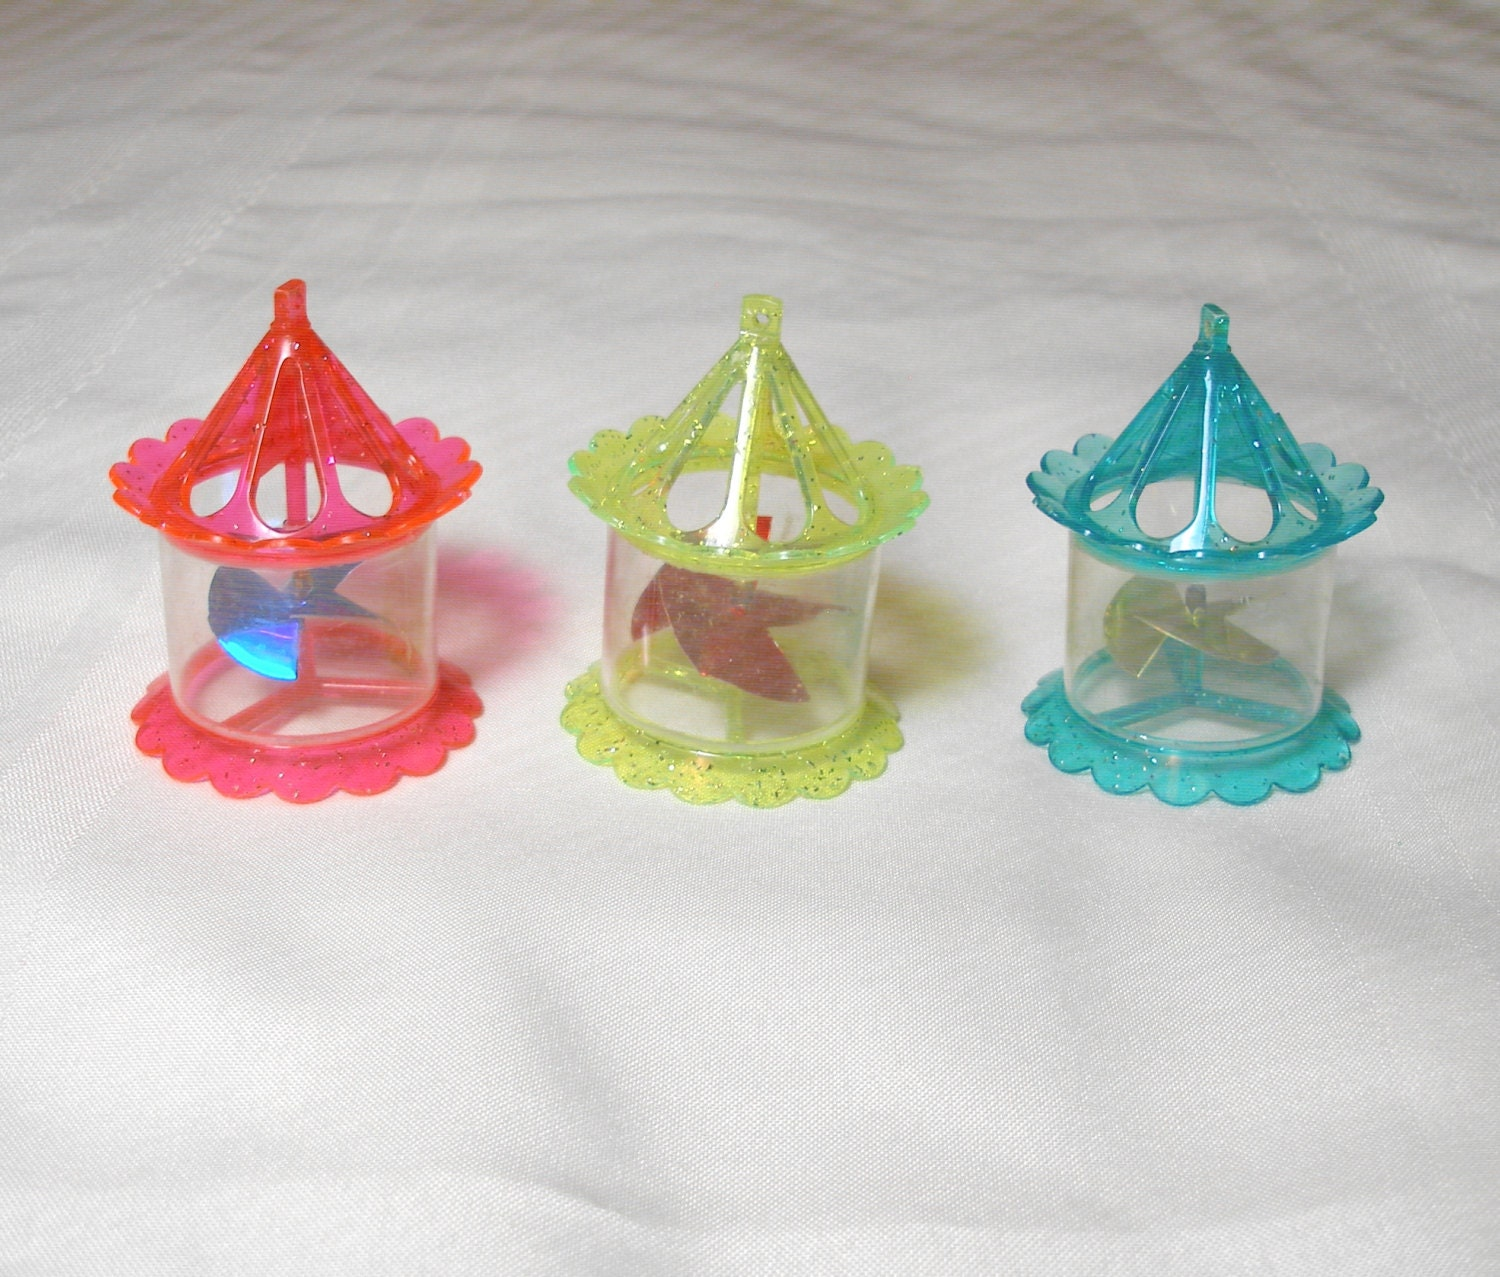 Twinkler Spinner Ornaments Set of 3 Vintage Plastic Birdcage